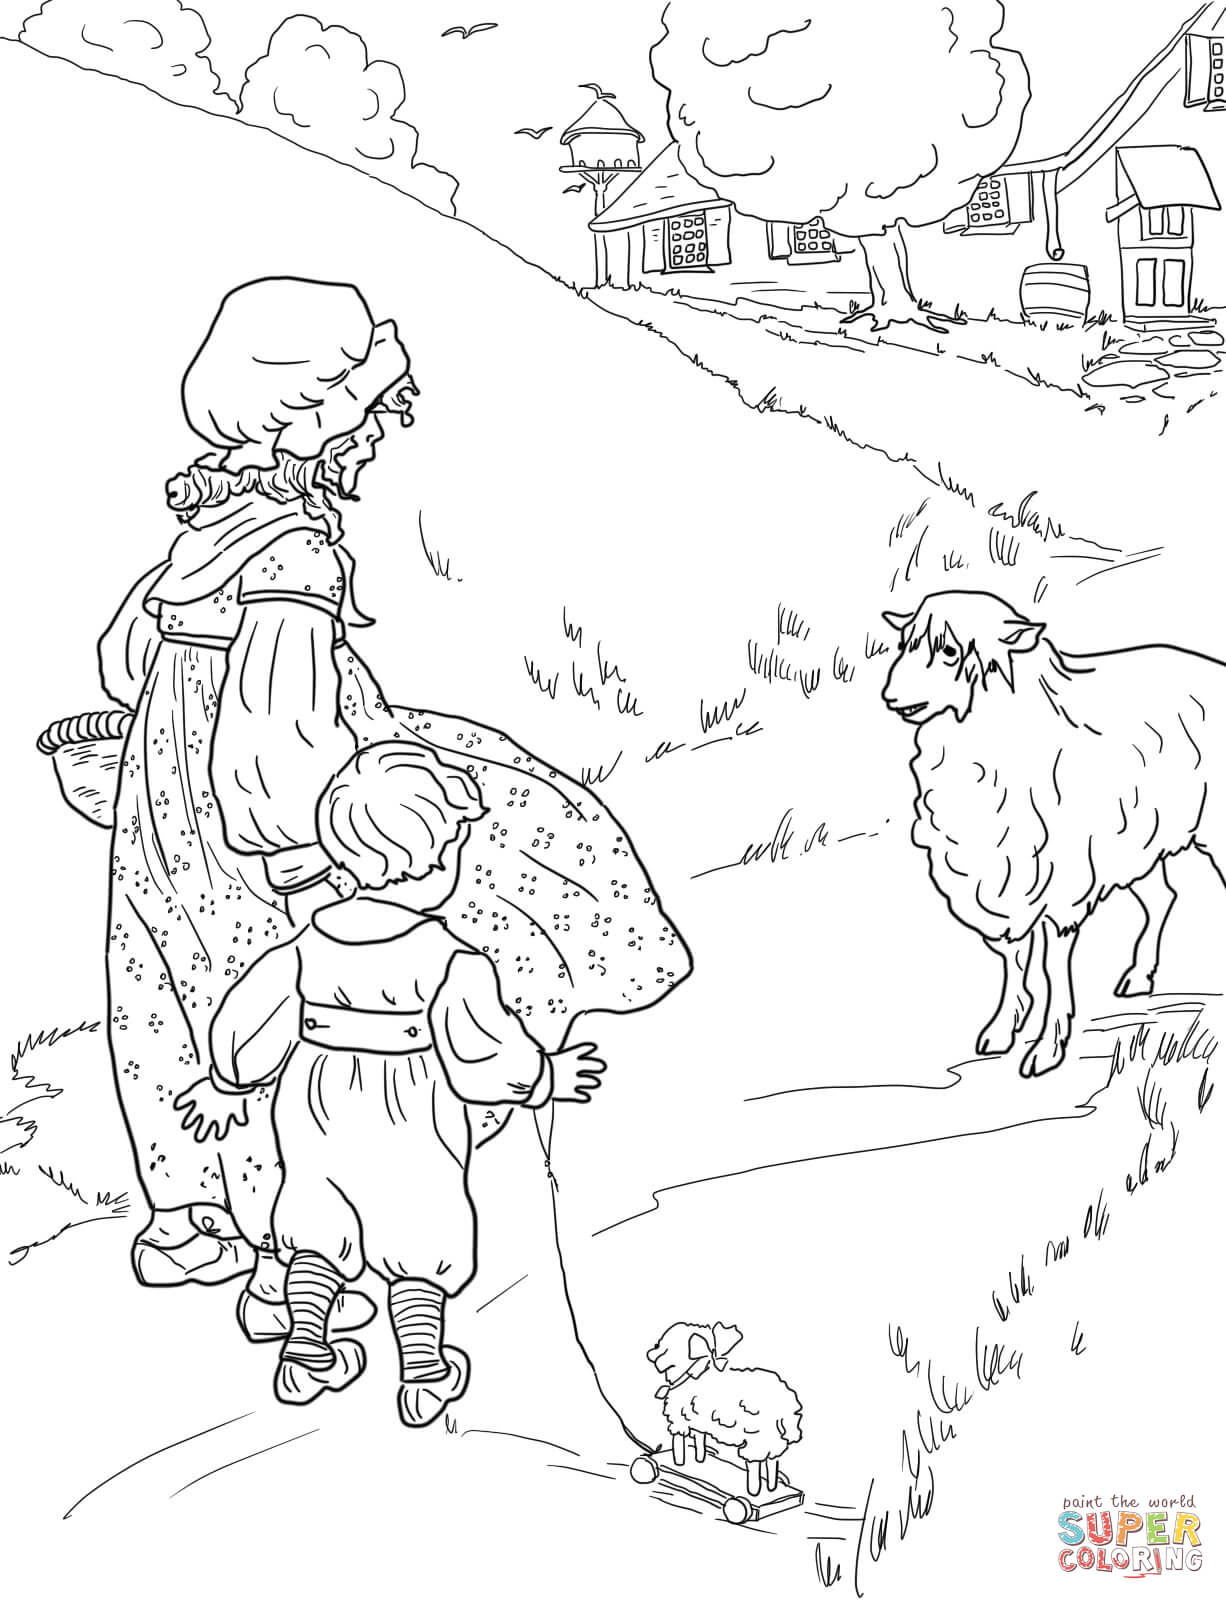 Mother Goose Nursery Rhymes Coloring Pages | Free Coloring Pages - Free Printable Mother Goose Nursery Rhymes